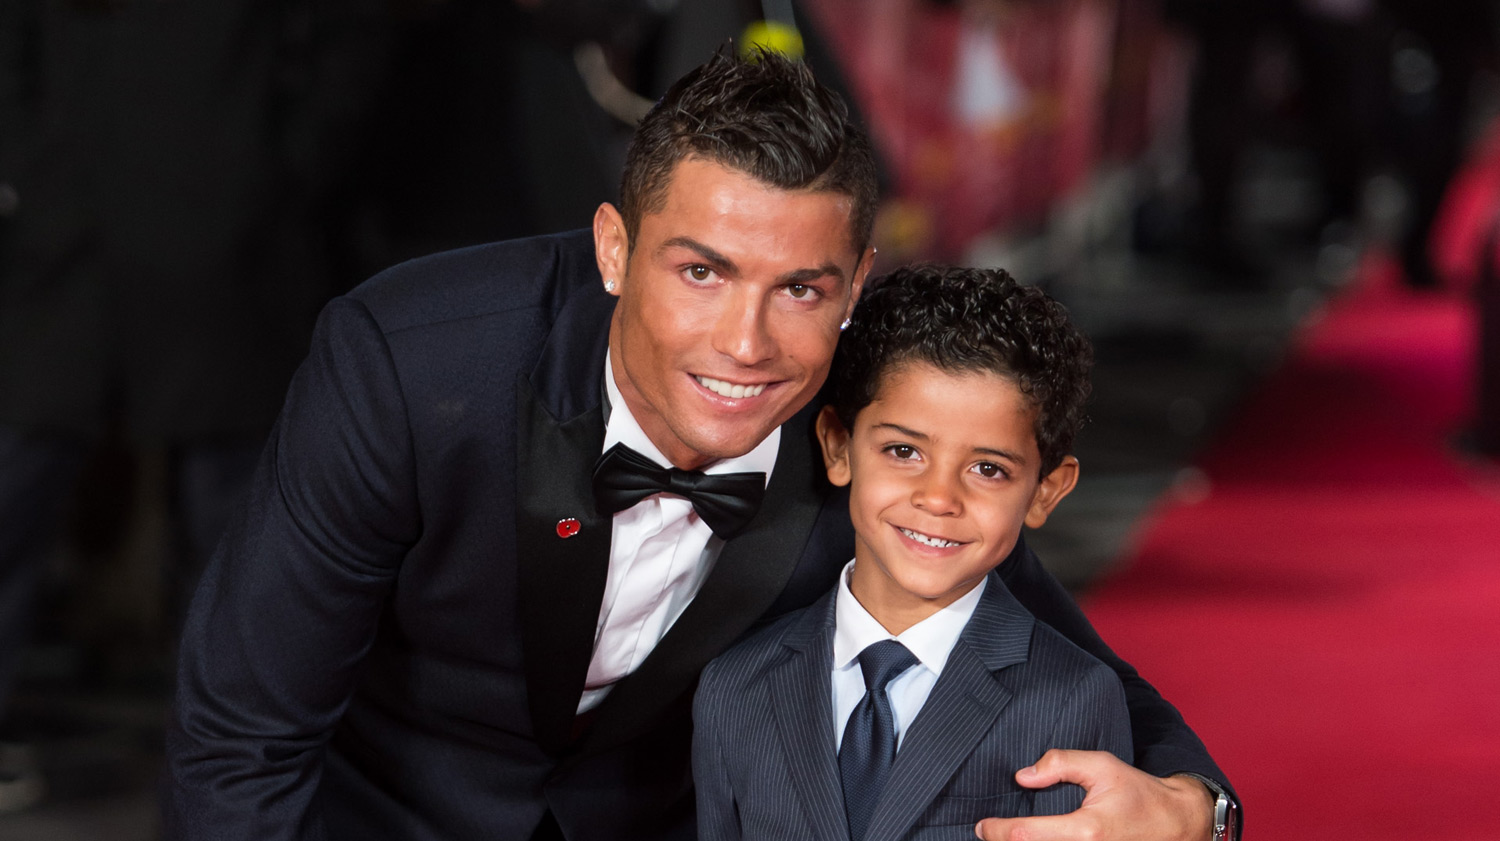 Cristiano Ronaldo Family Photos, Wife,  Son, Age, Height